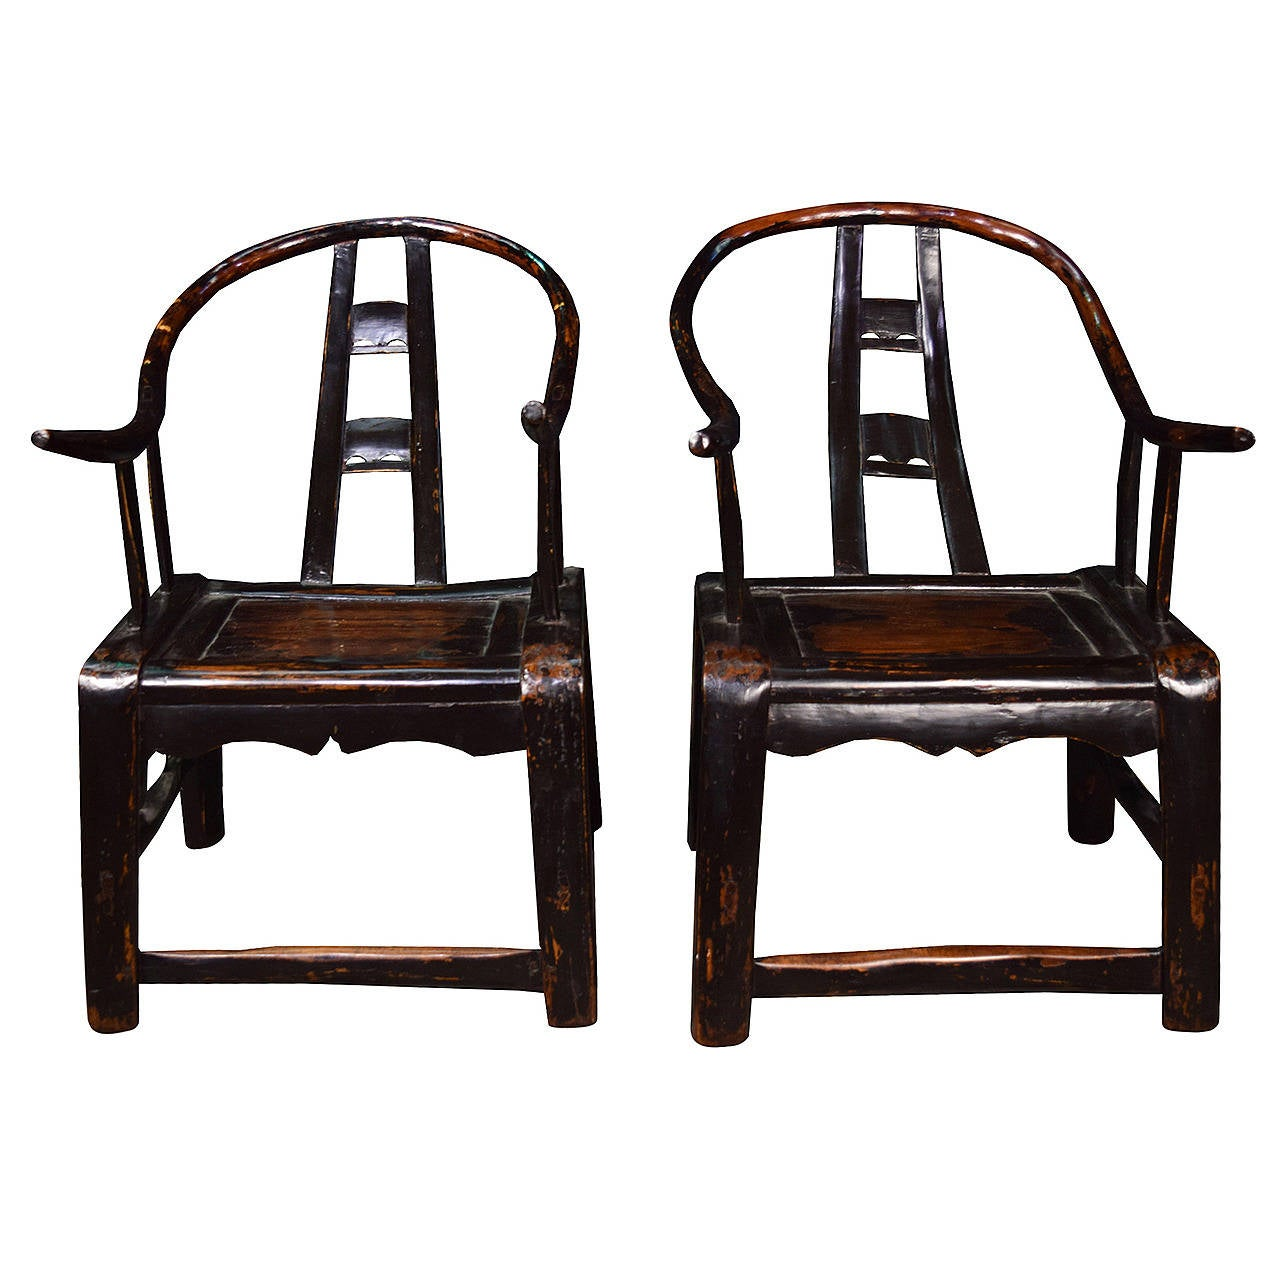 Petite Chairs Pair Of 19th Century Chinese Petite Chairs At 1stdibs